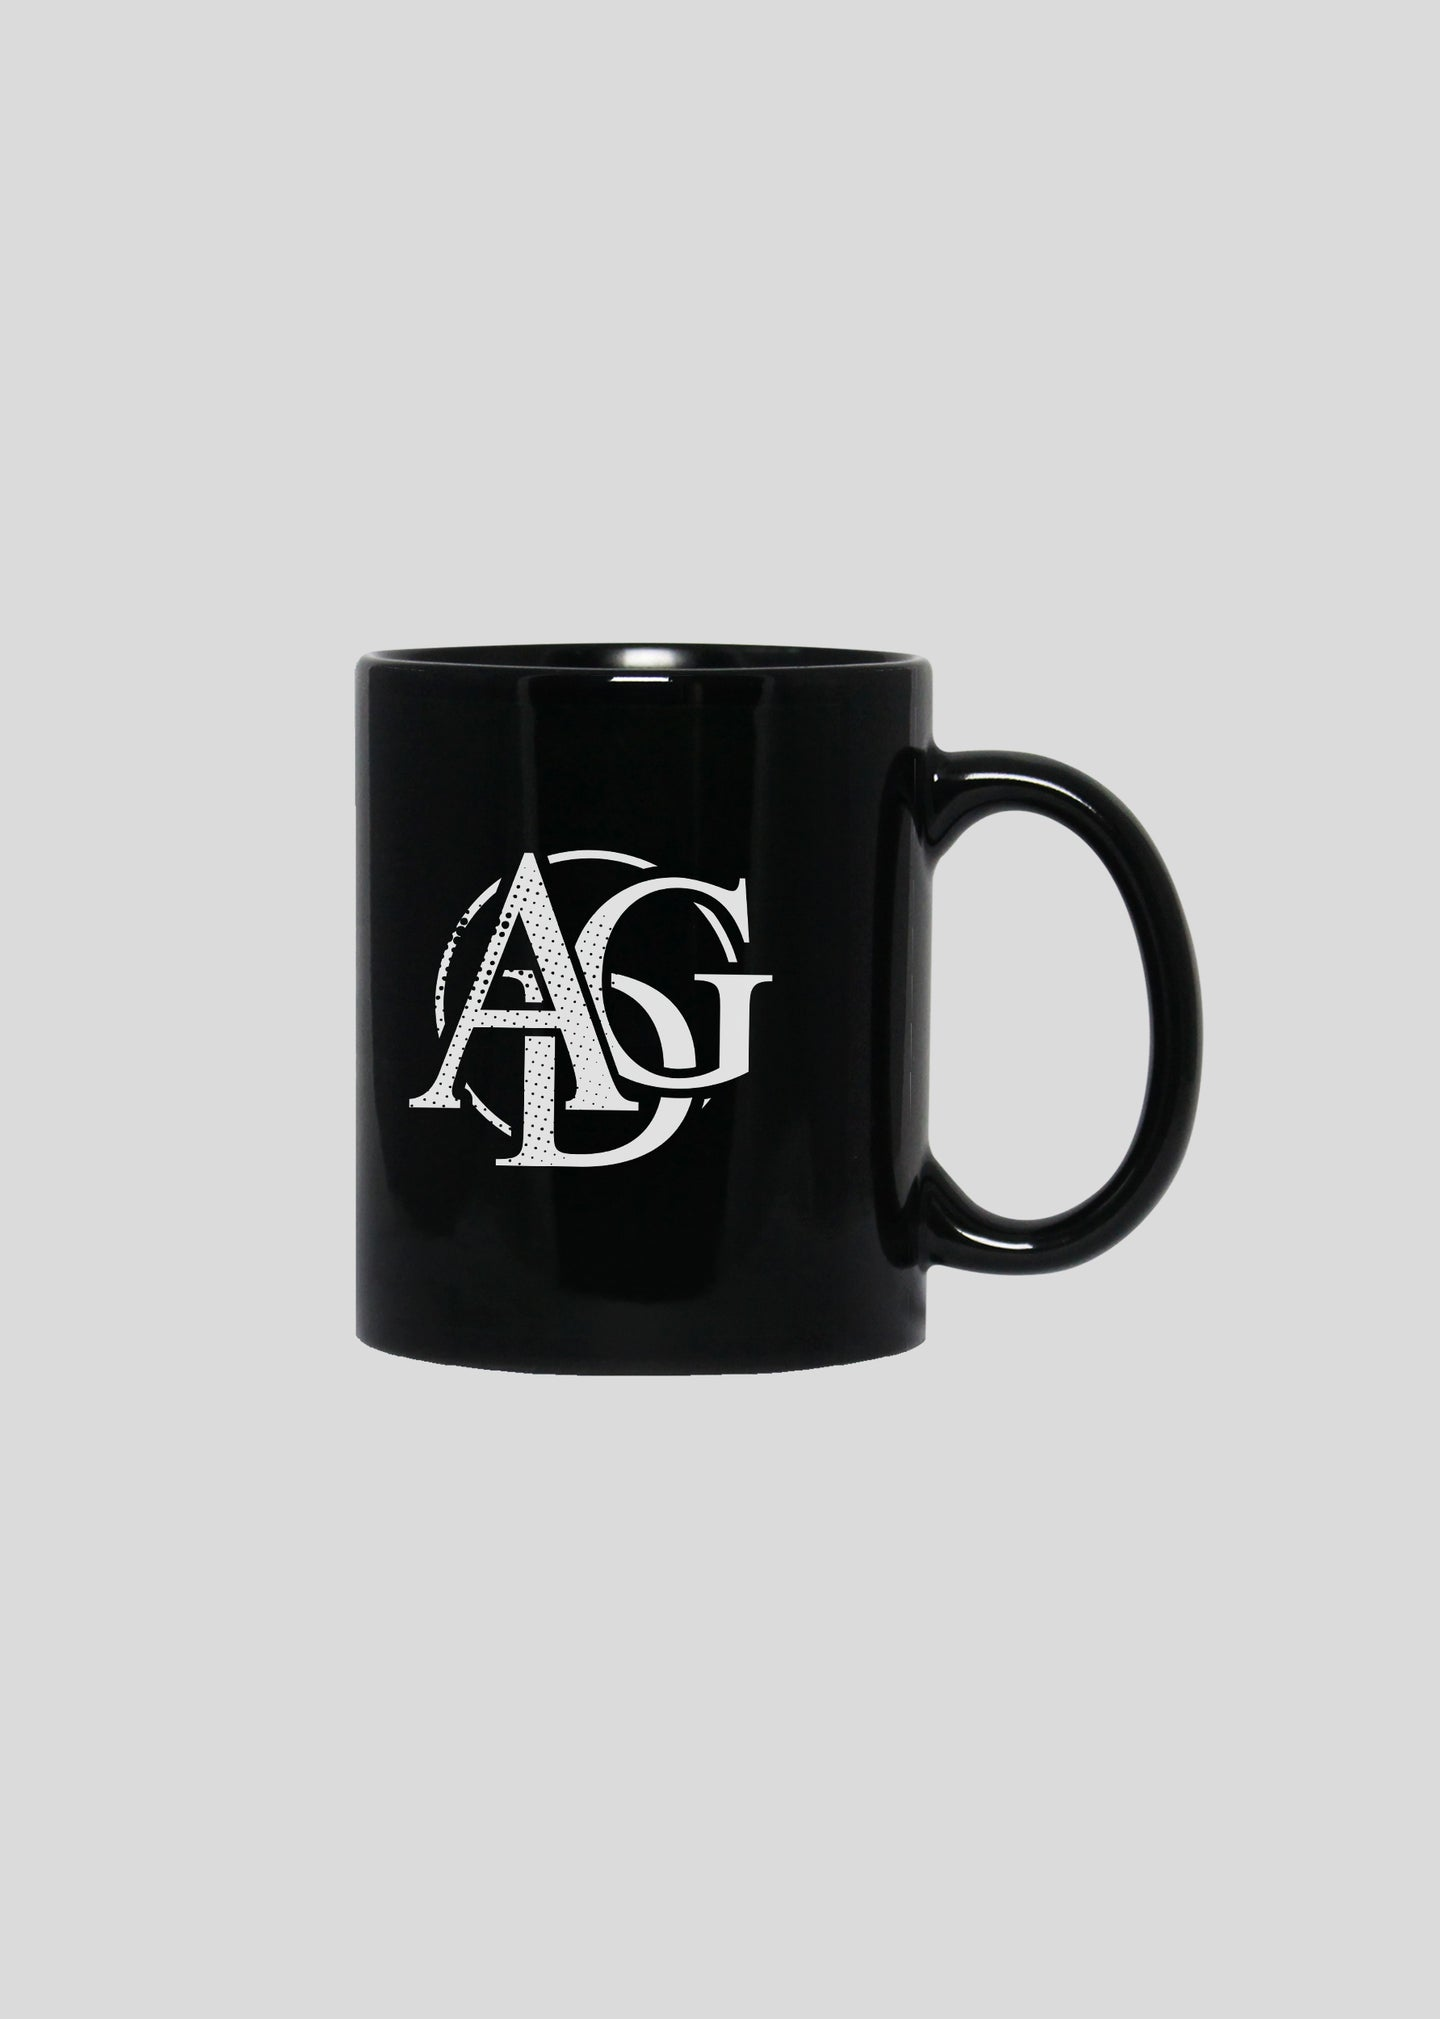 ANY GIVEN DAY - CUP (Black)